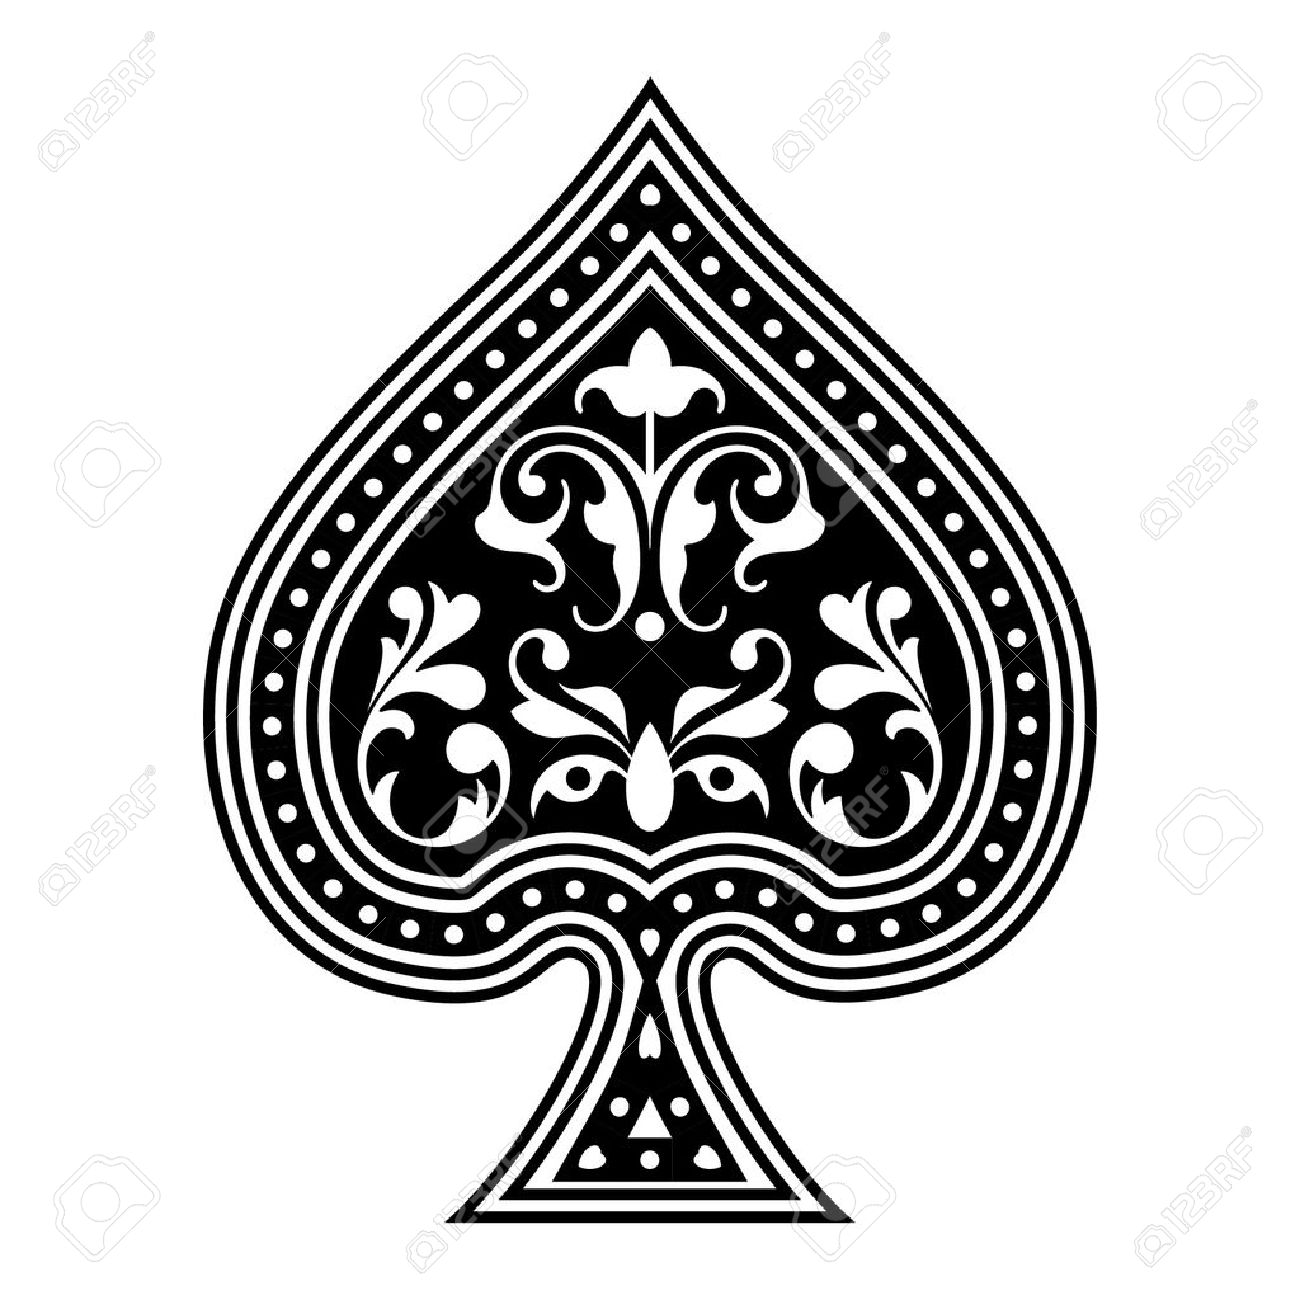 An ornate playing card spade.